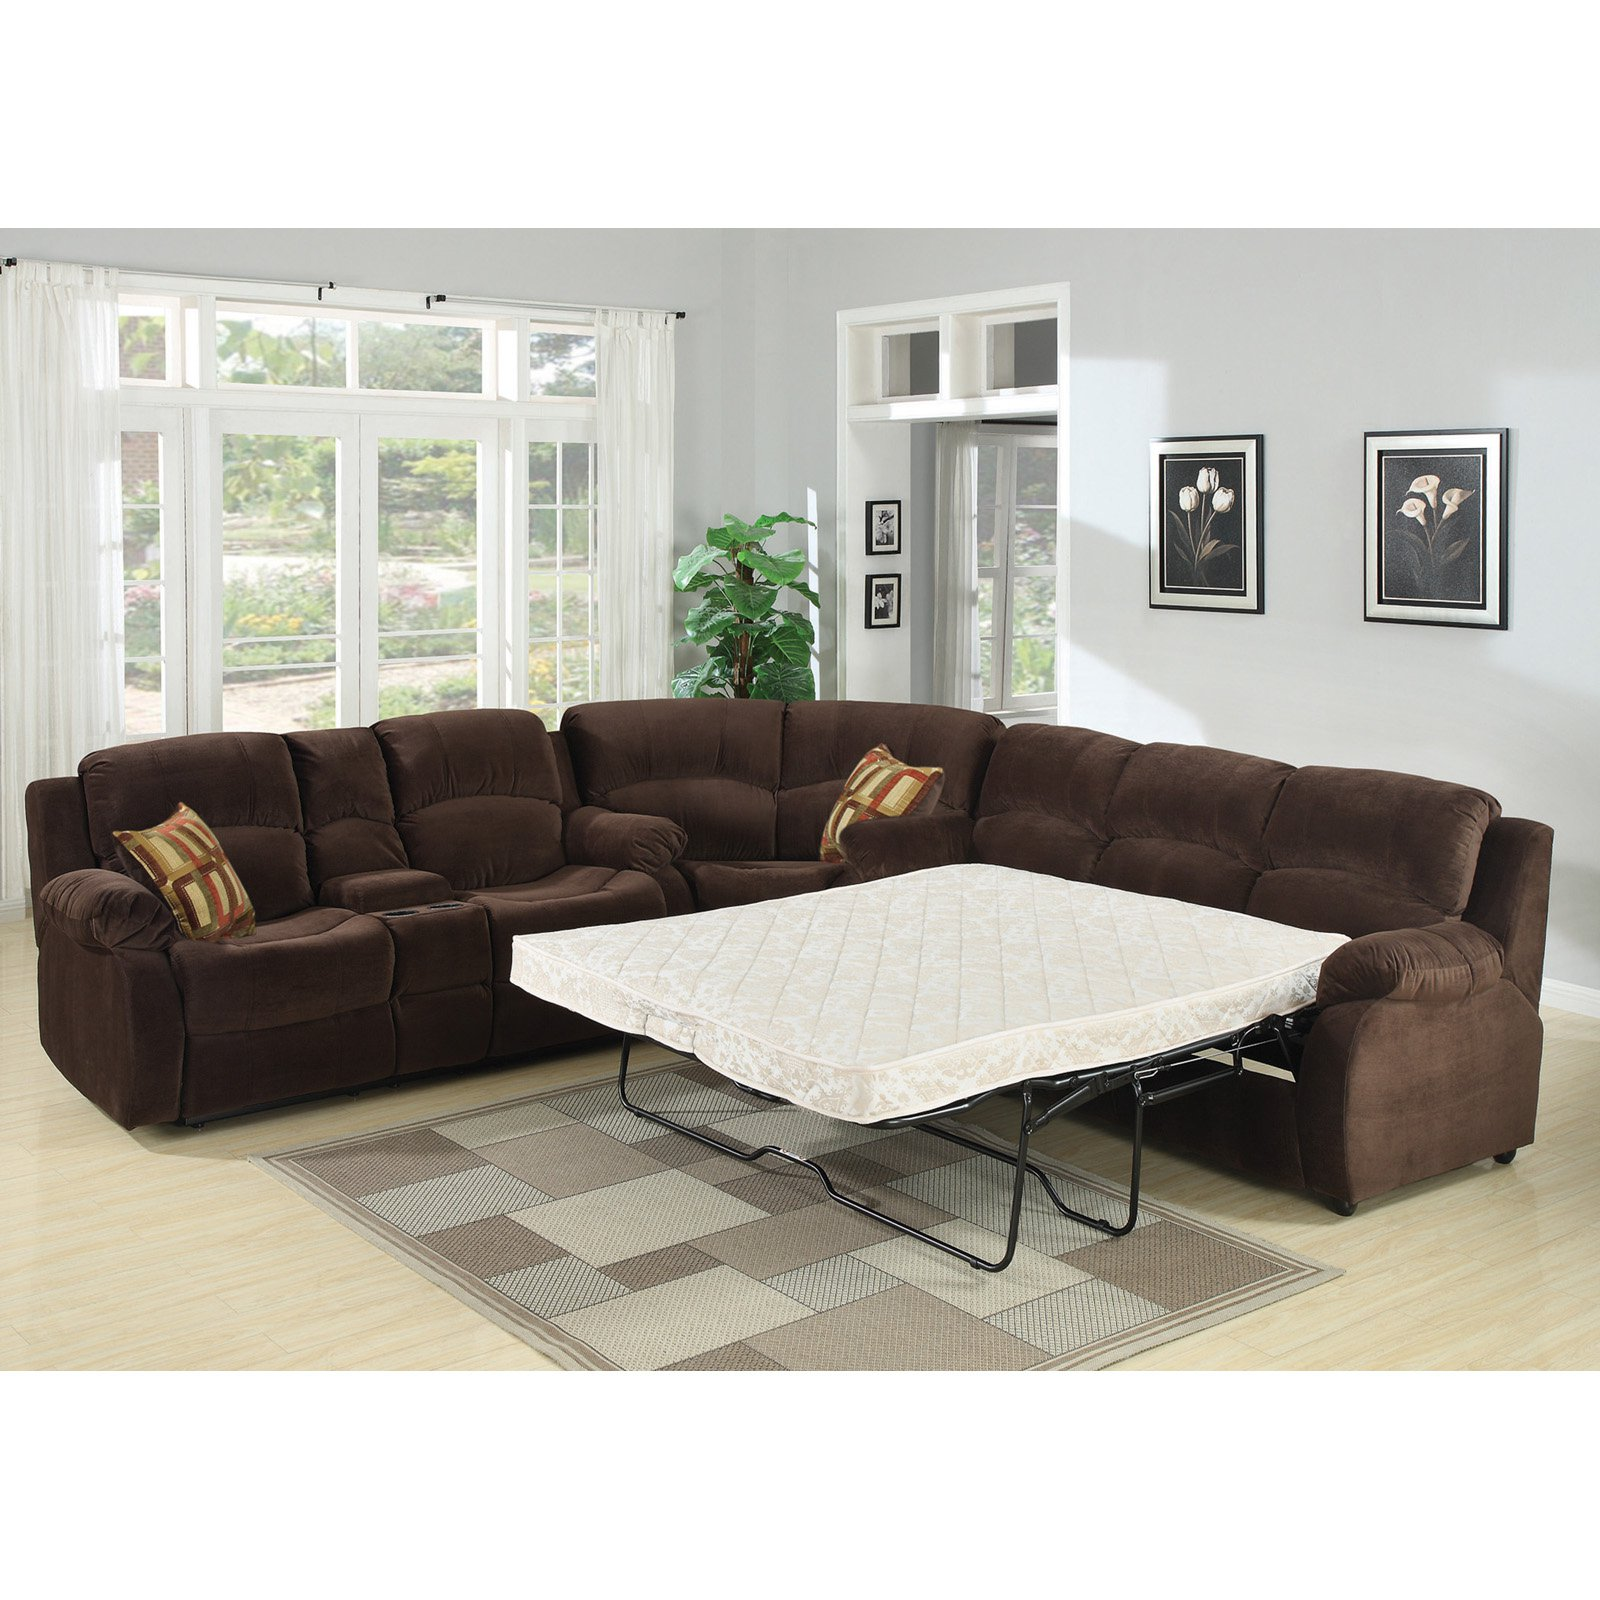 Christies Home Living Tracey Queen Sofa Bed